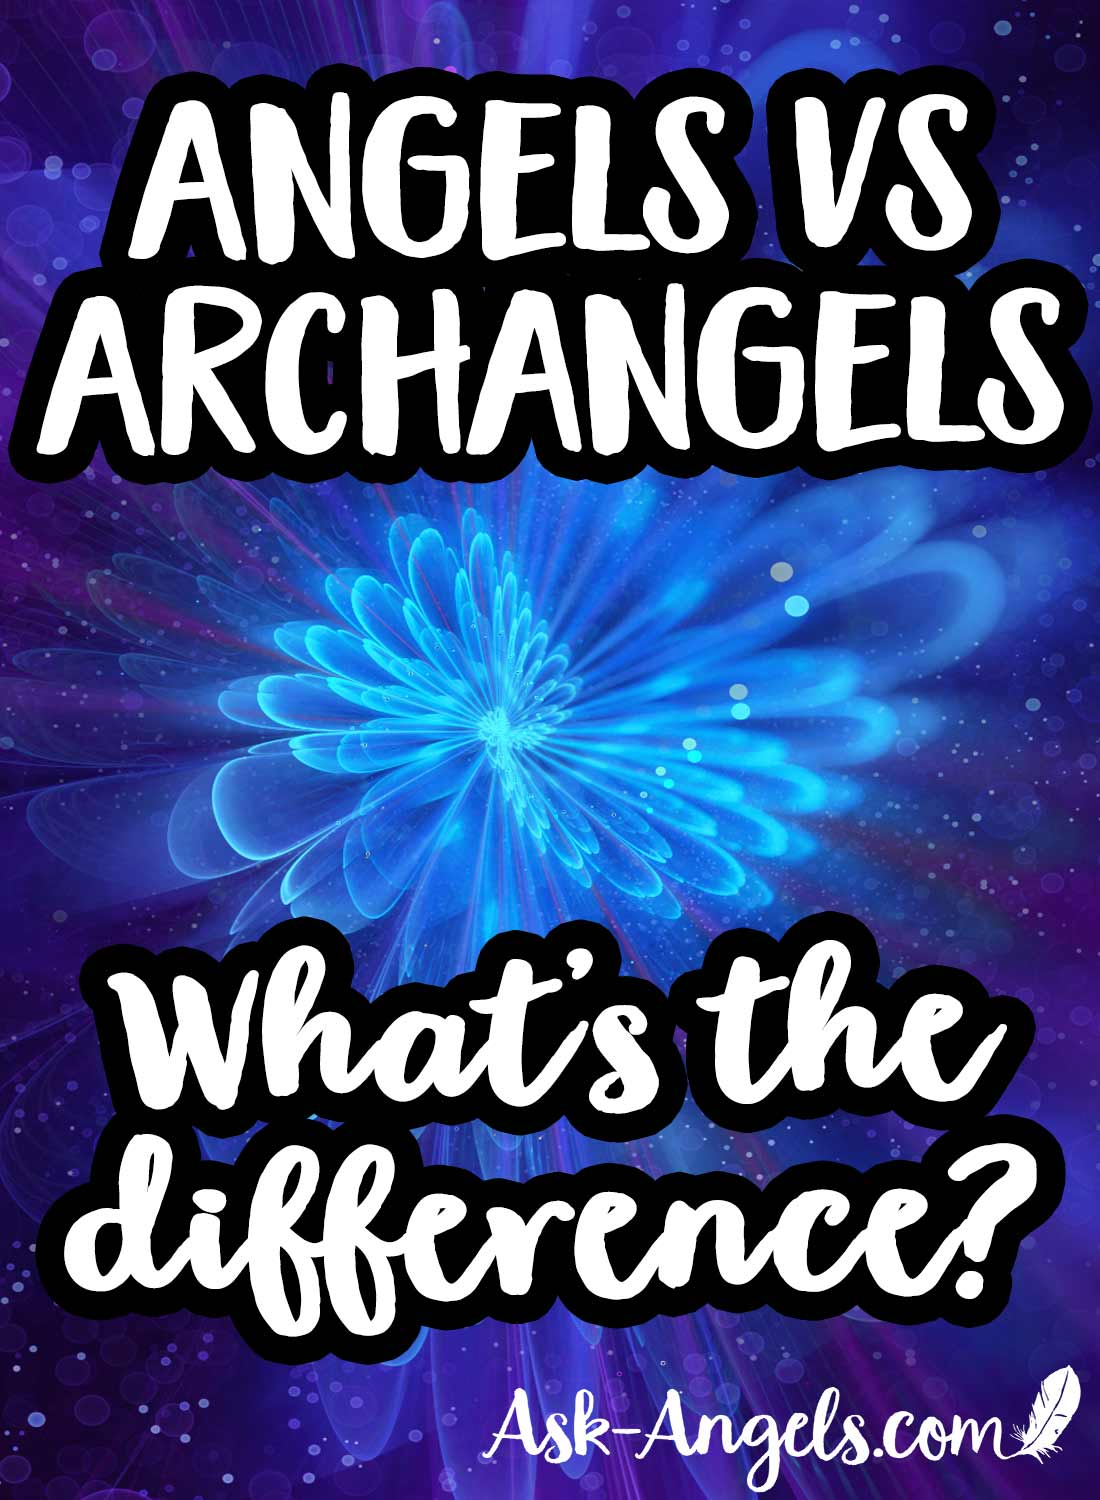 Angels vs Archangels... What's the difference?